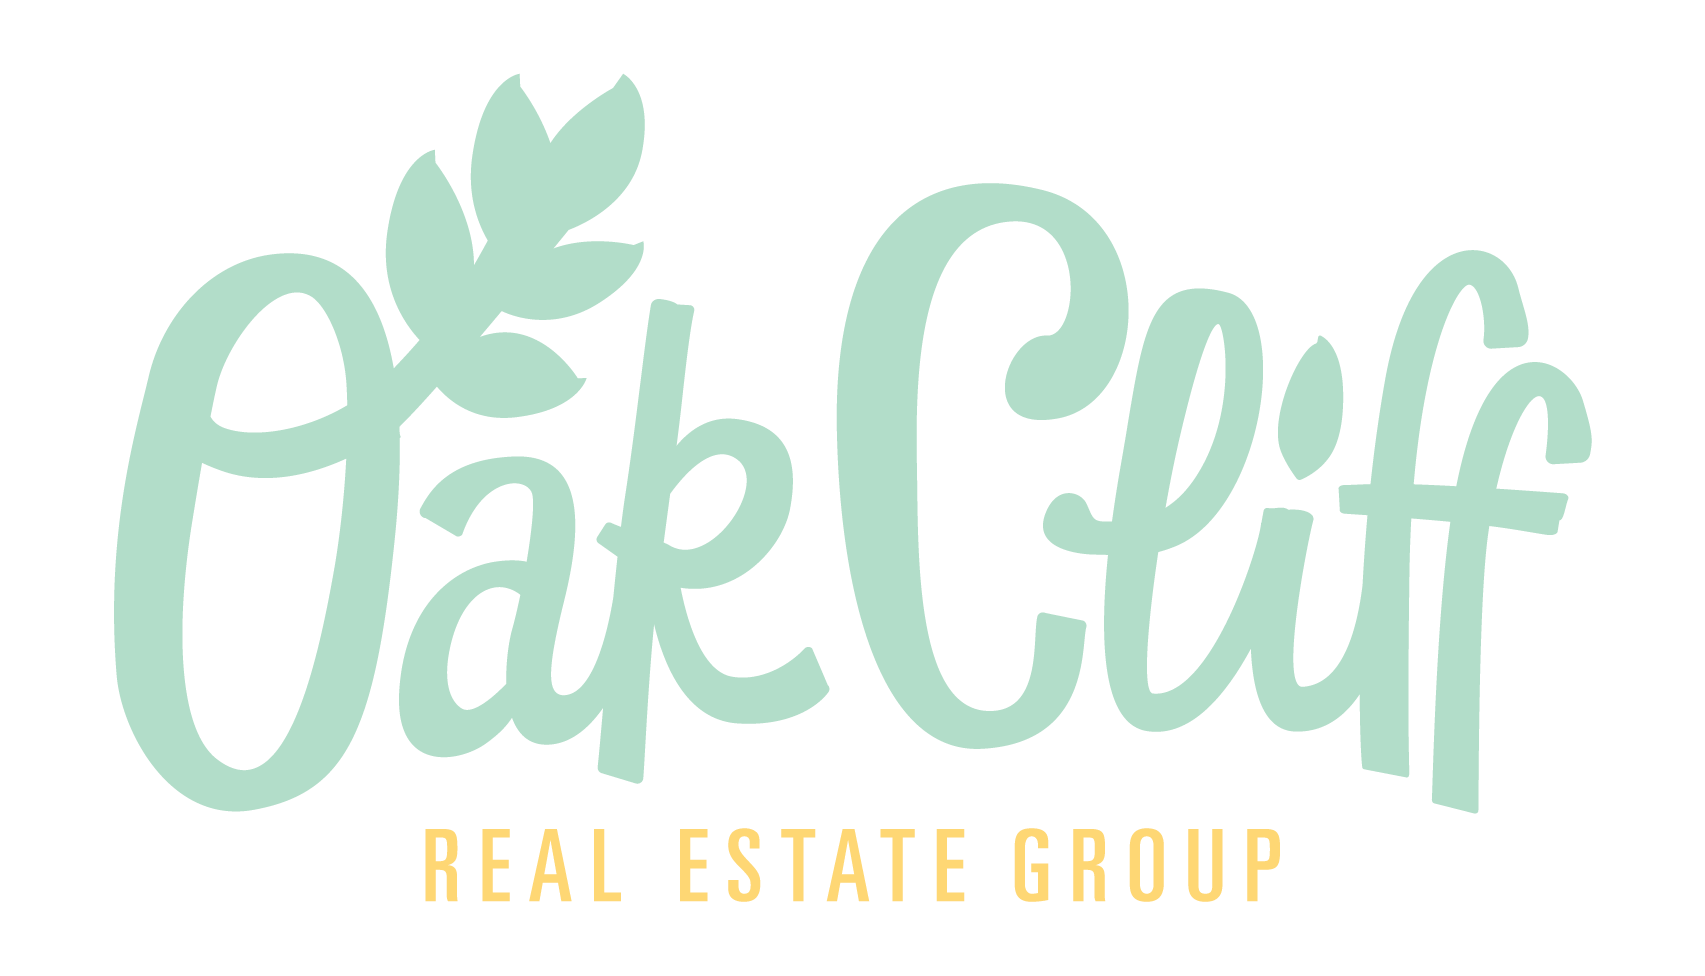 Oak Cliff Real Estate Group